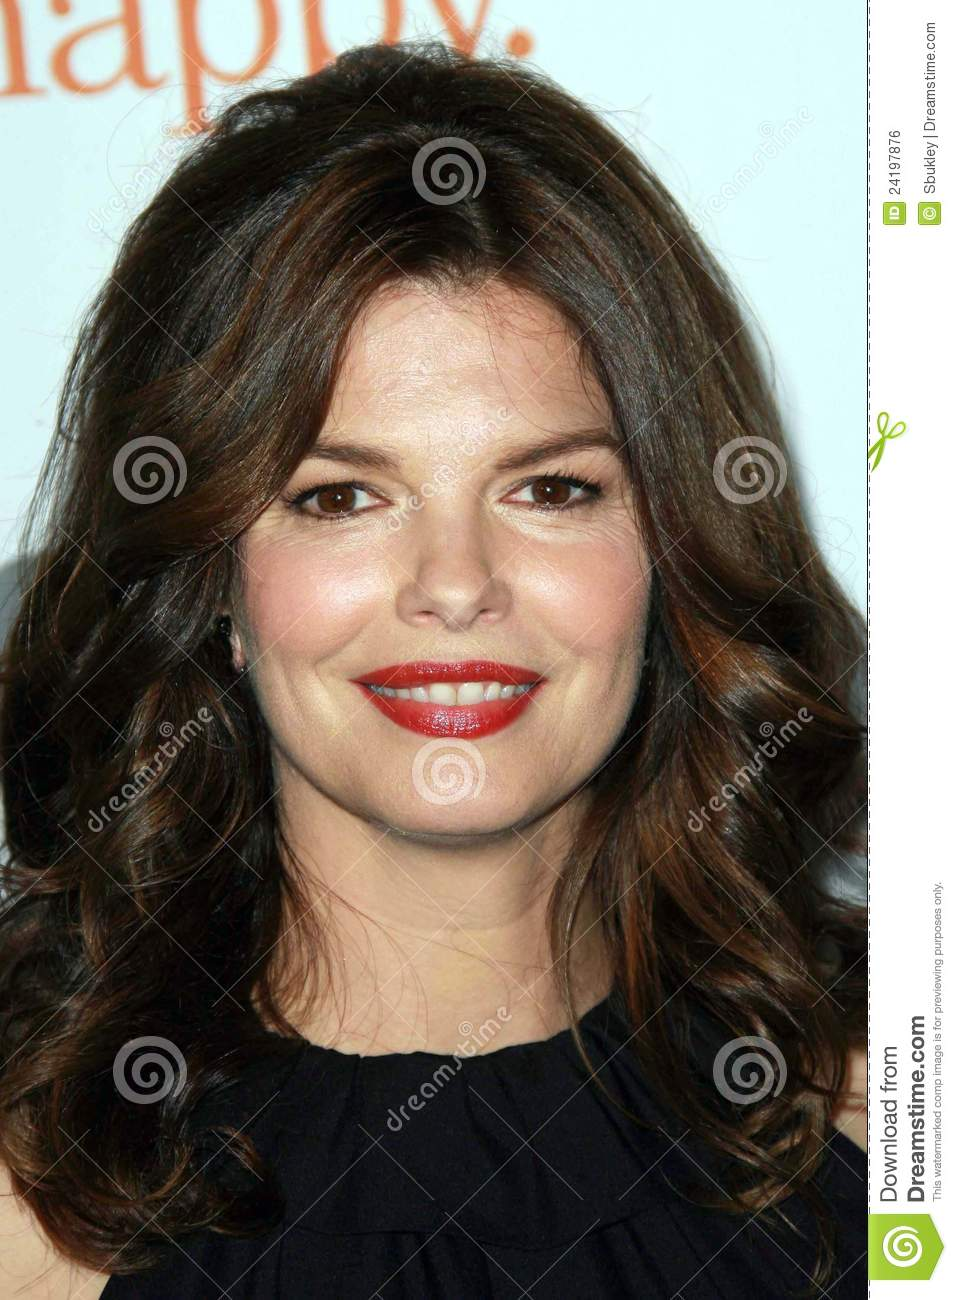 from Lucas porno de jeanne tripplehorn